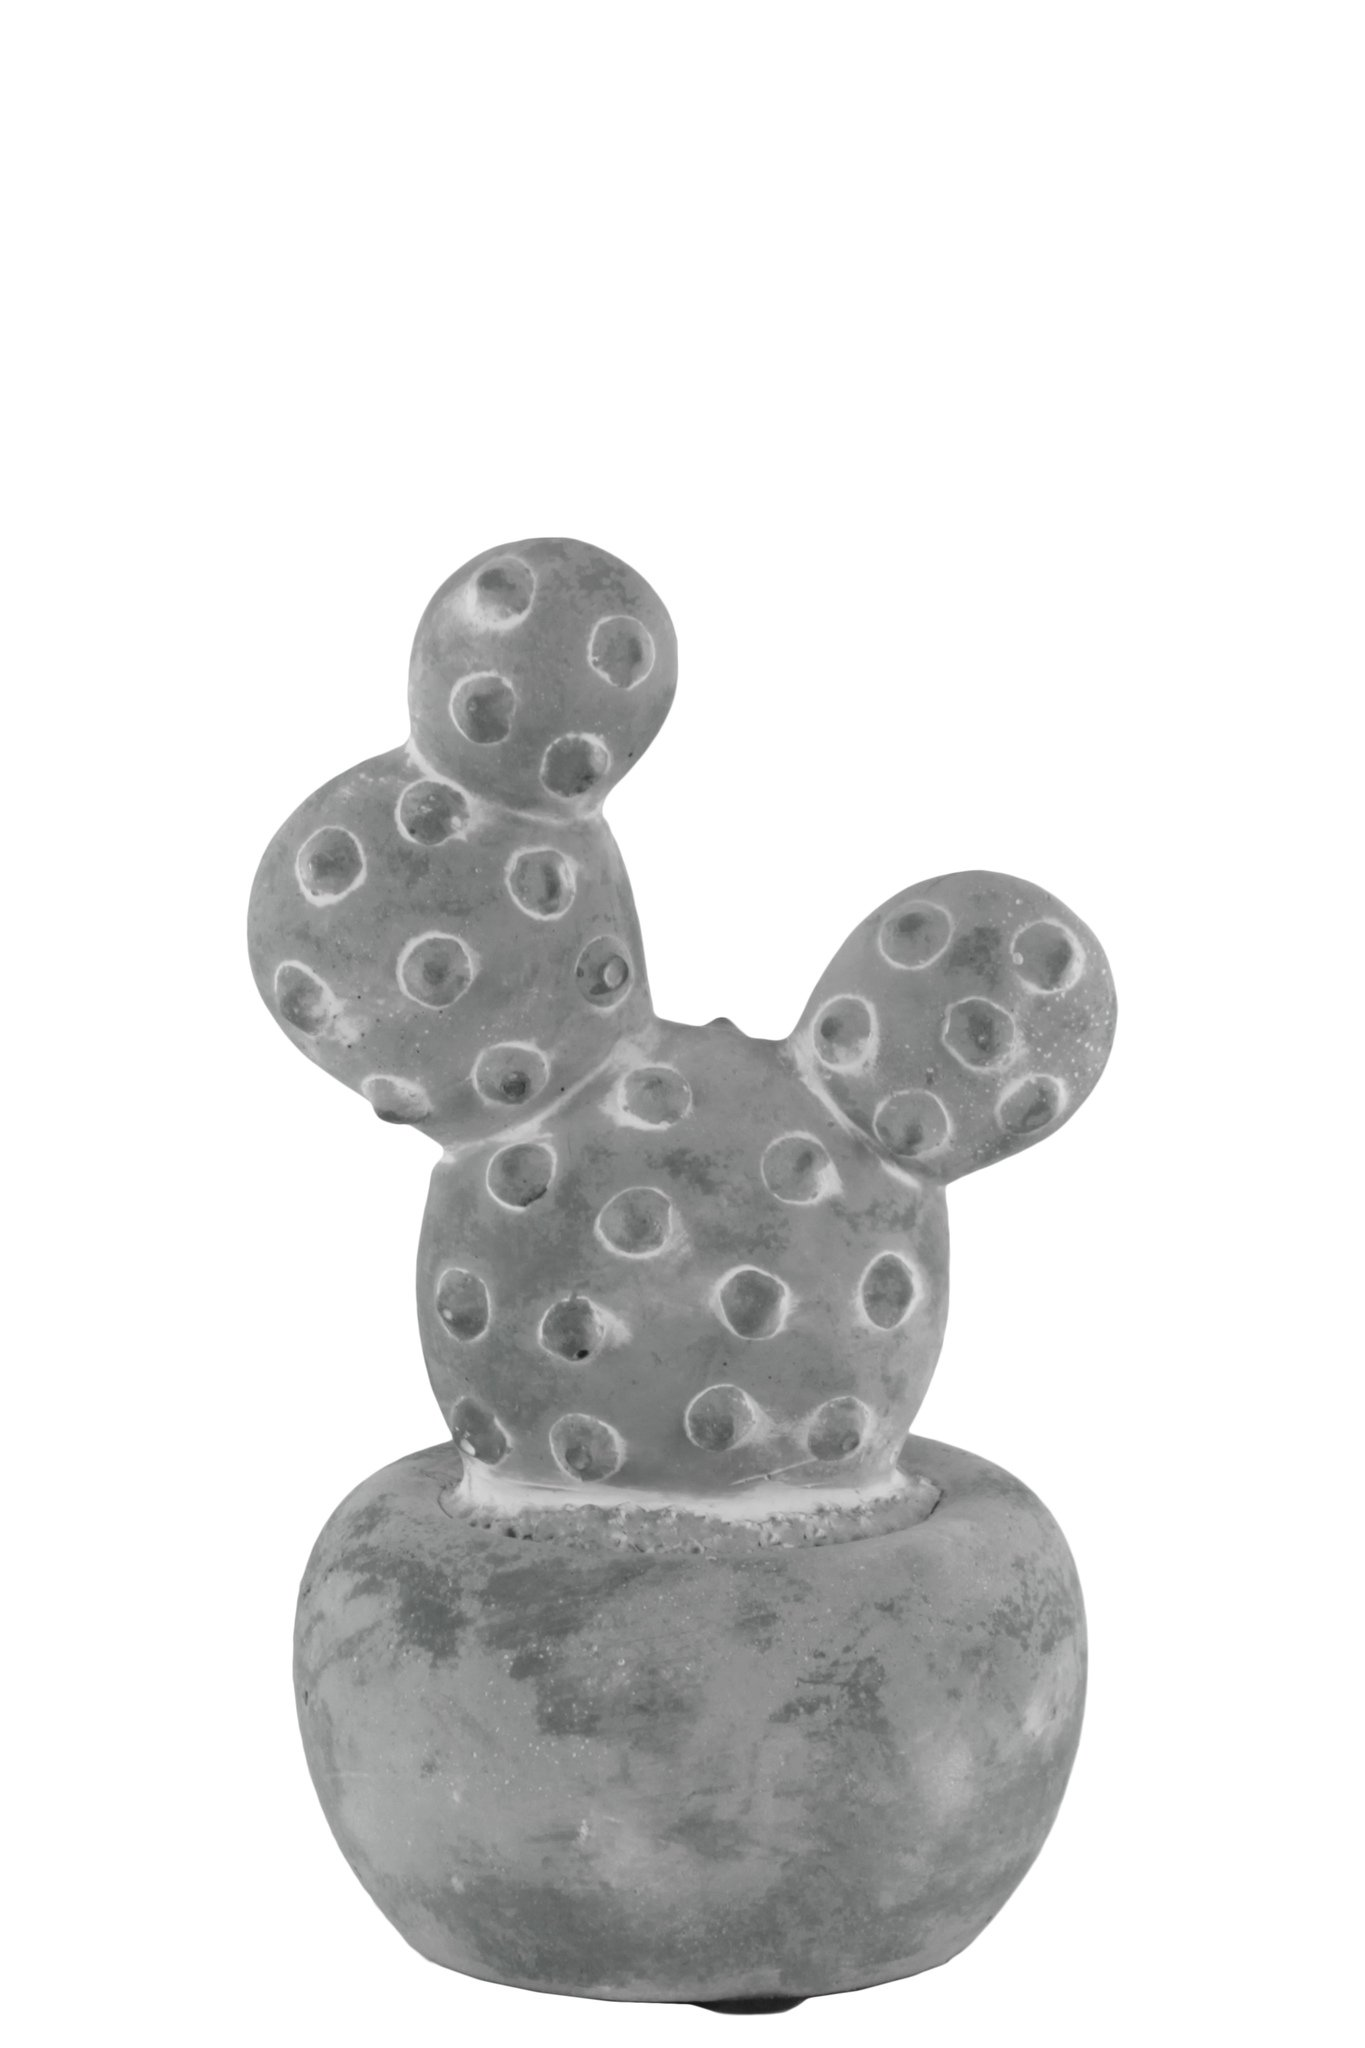 Urban Trends 53602 Cement Cactus Prickly Pear Figurine on Round Base Small Washed Concrete Finish, Gray